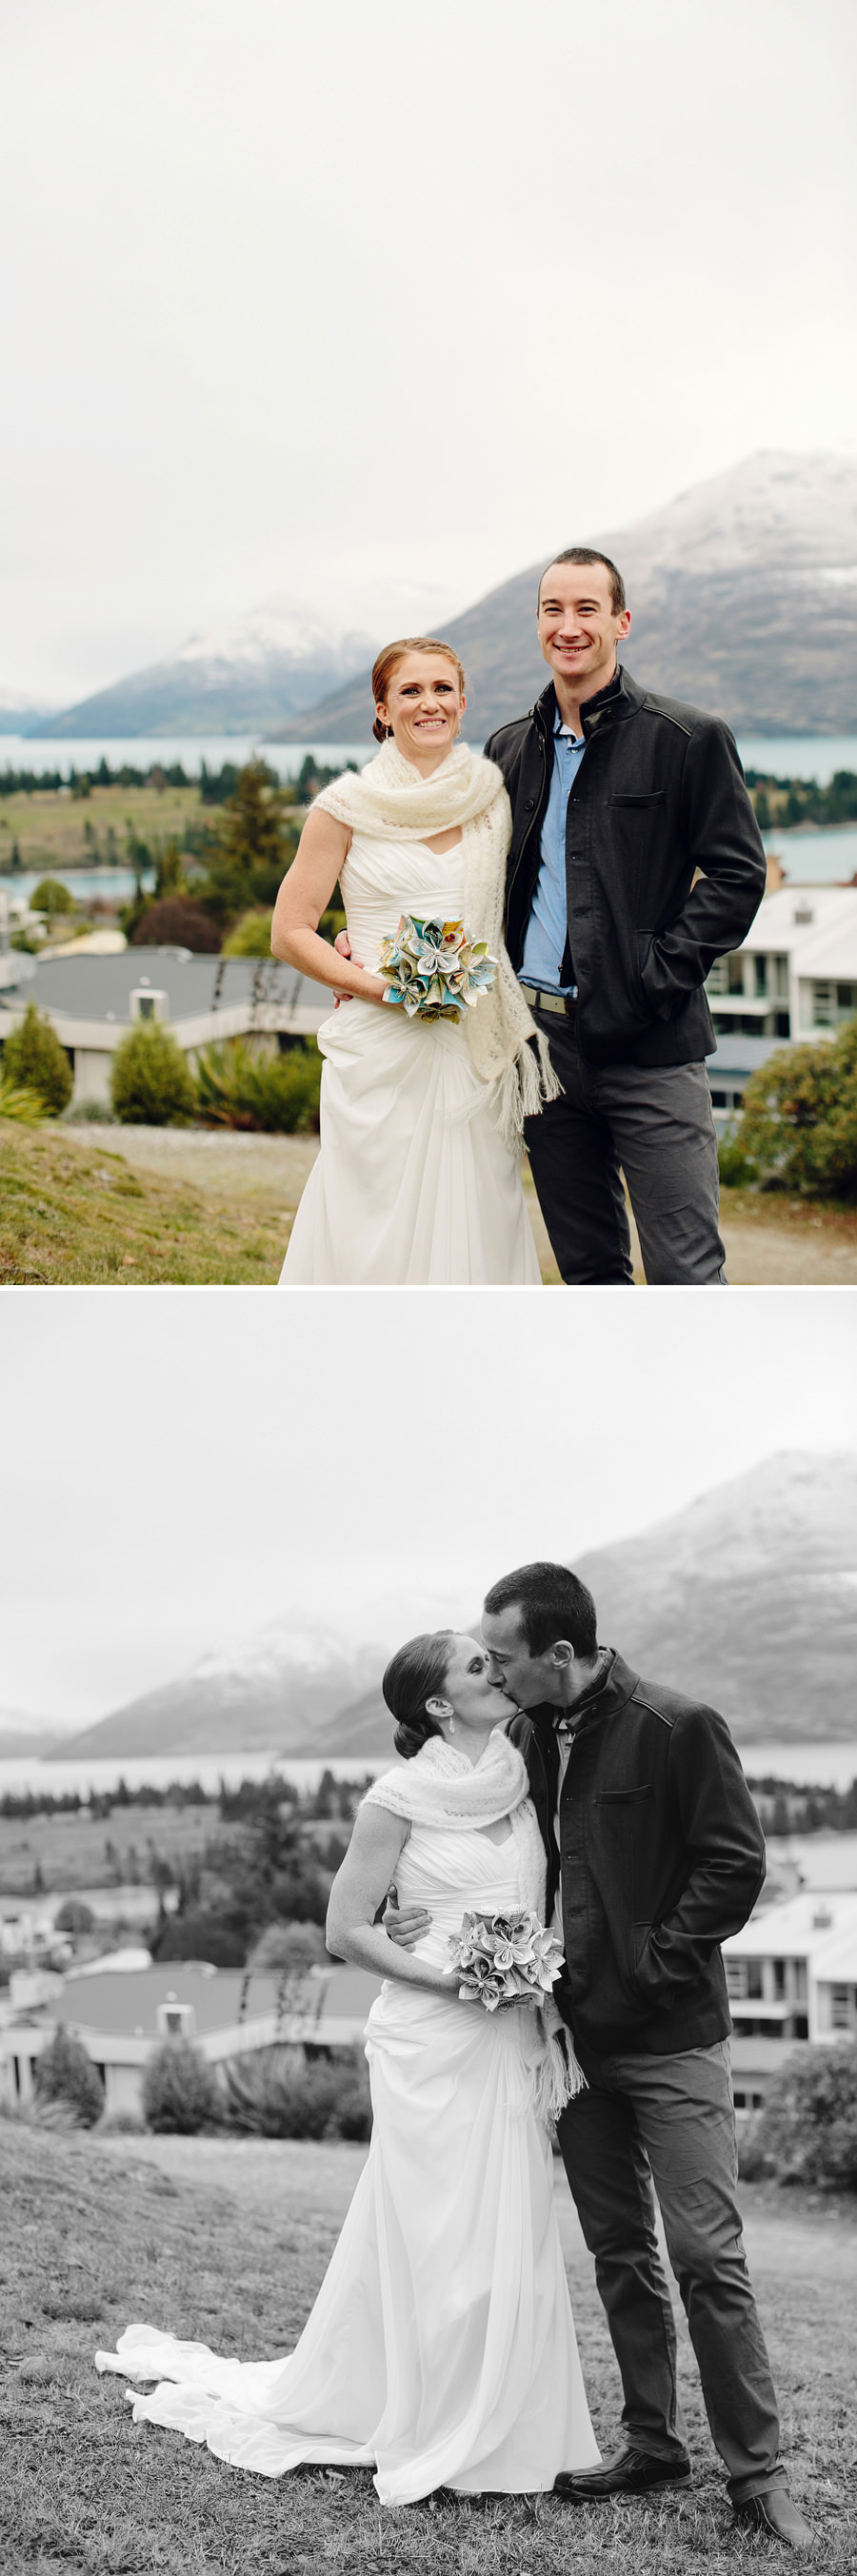 Queenstown Wedding Photography: Bride & Groom portraits